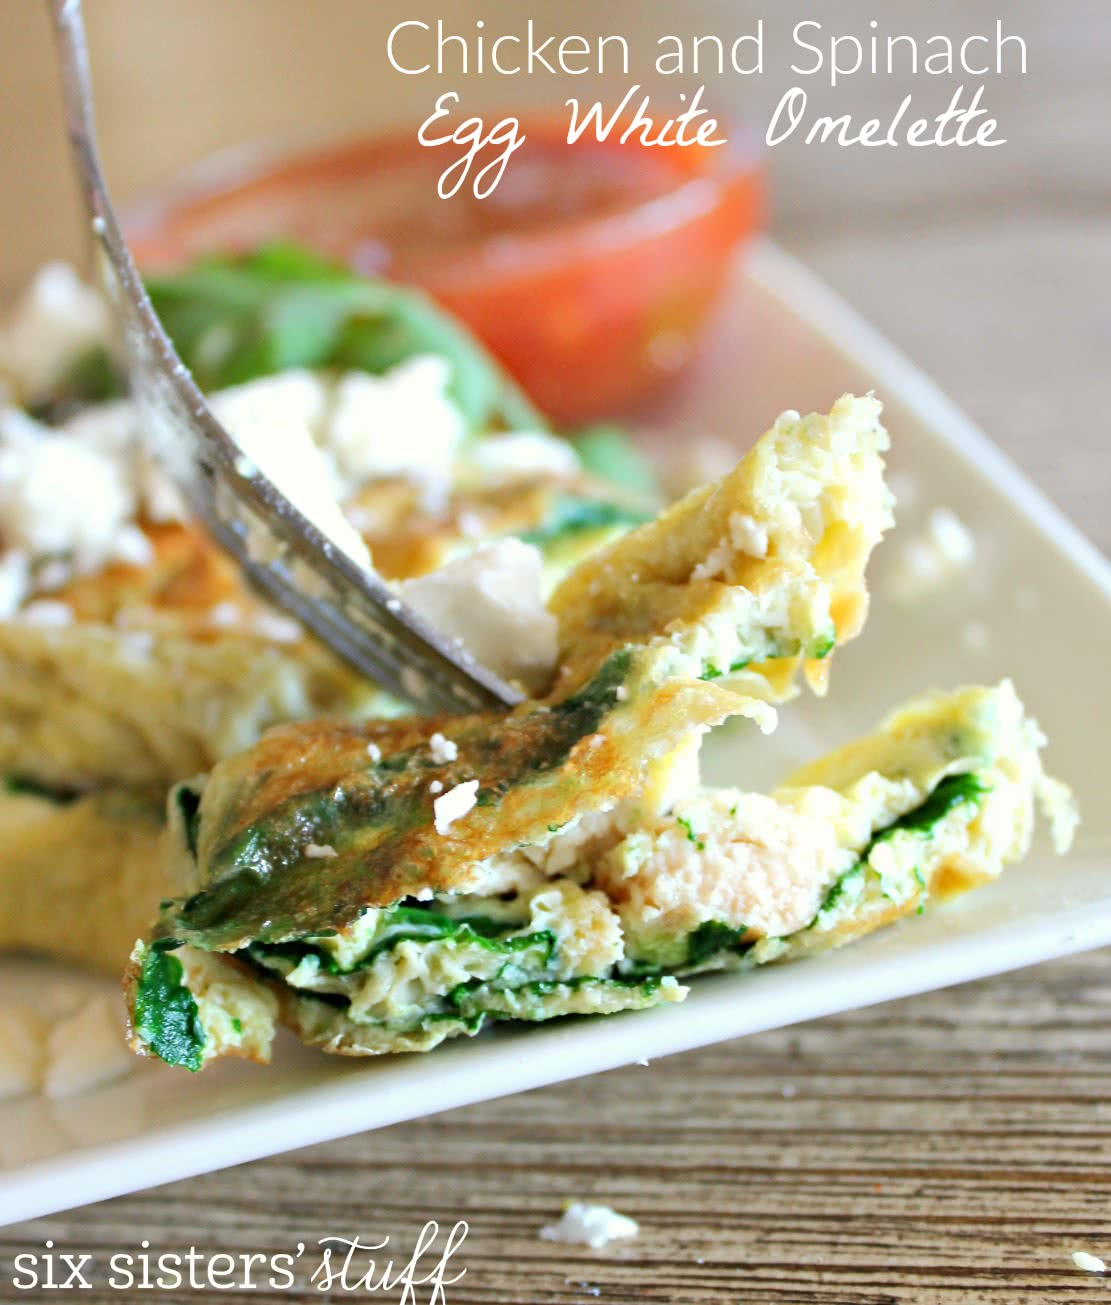 Spinach and Chicken Egg White Omelette